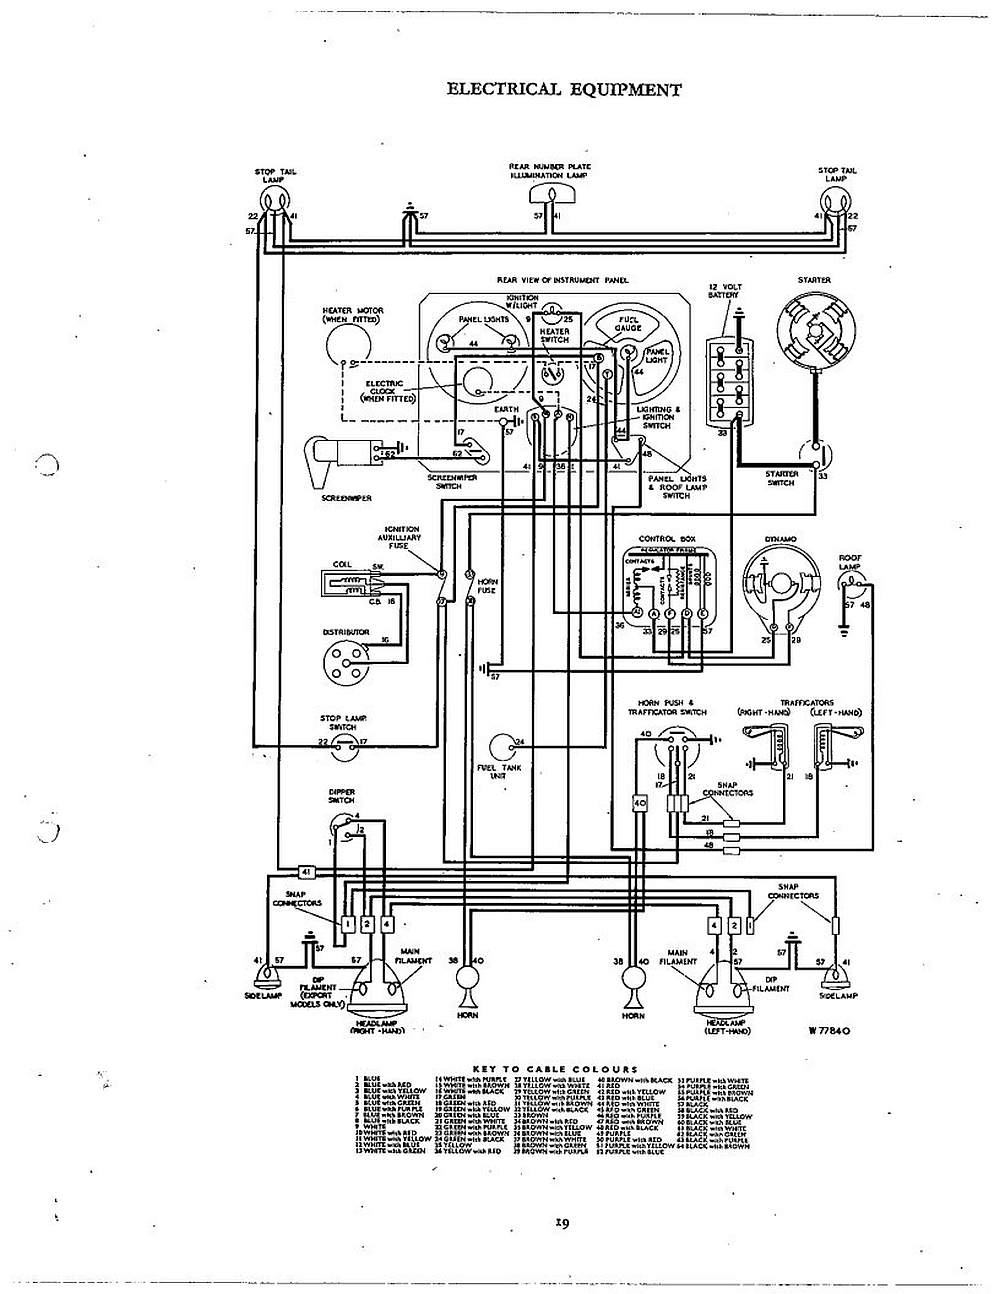 Triumph Mayflower wiring diagram tr6 wiring diagram 1974 triumph tr6 wiring diagram \u2022 wiring triumph motorcycle wiring diagram at crackthecode.co